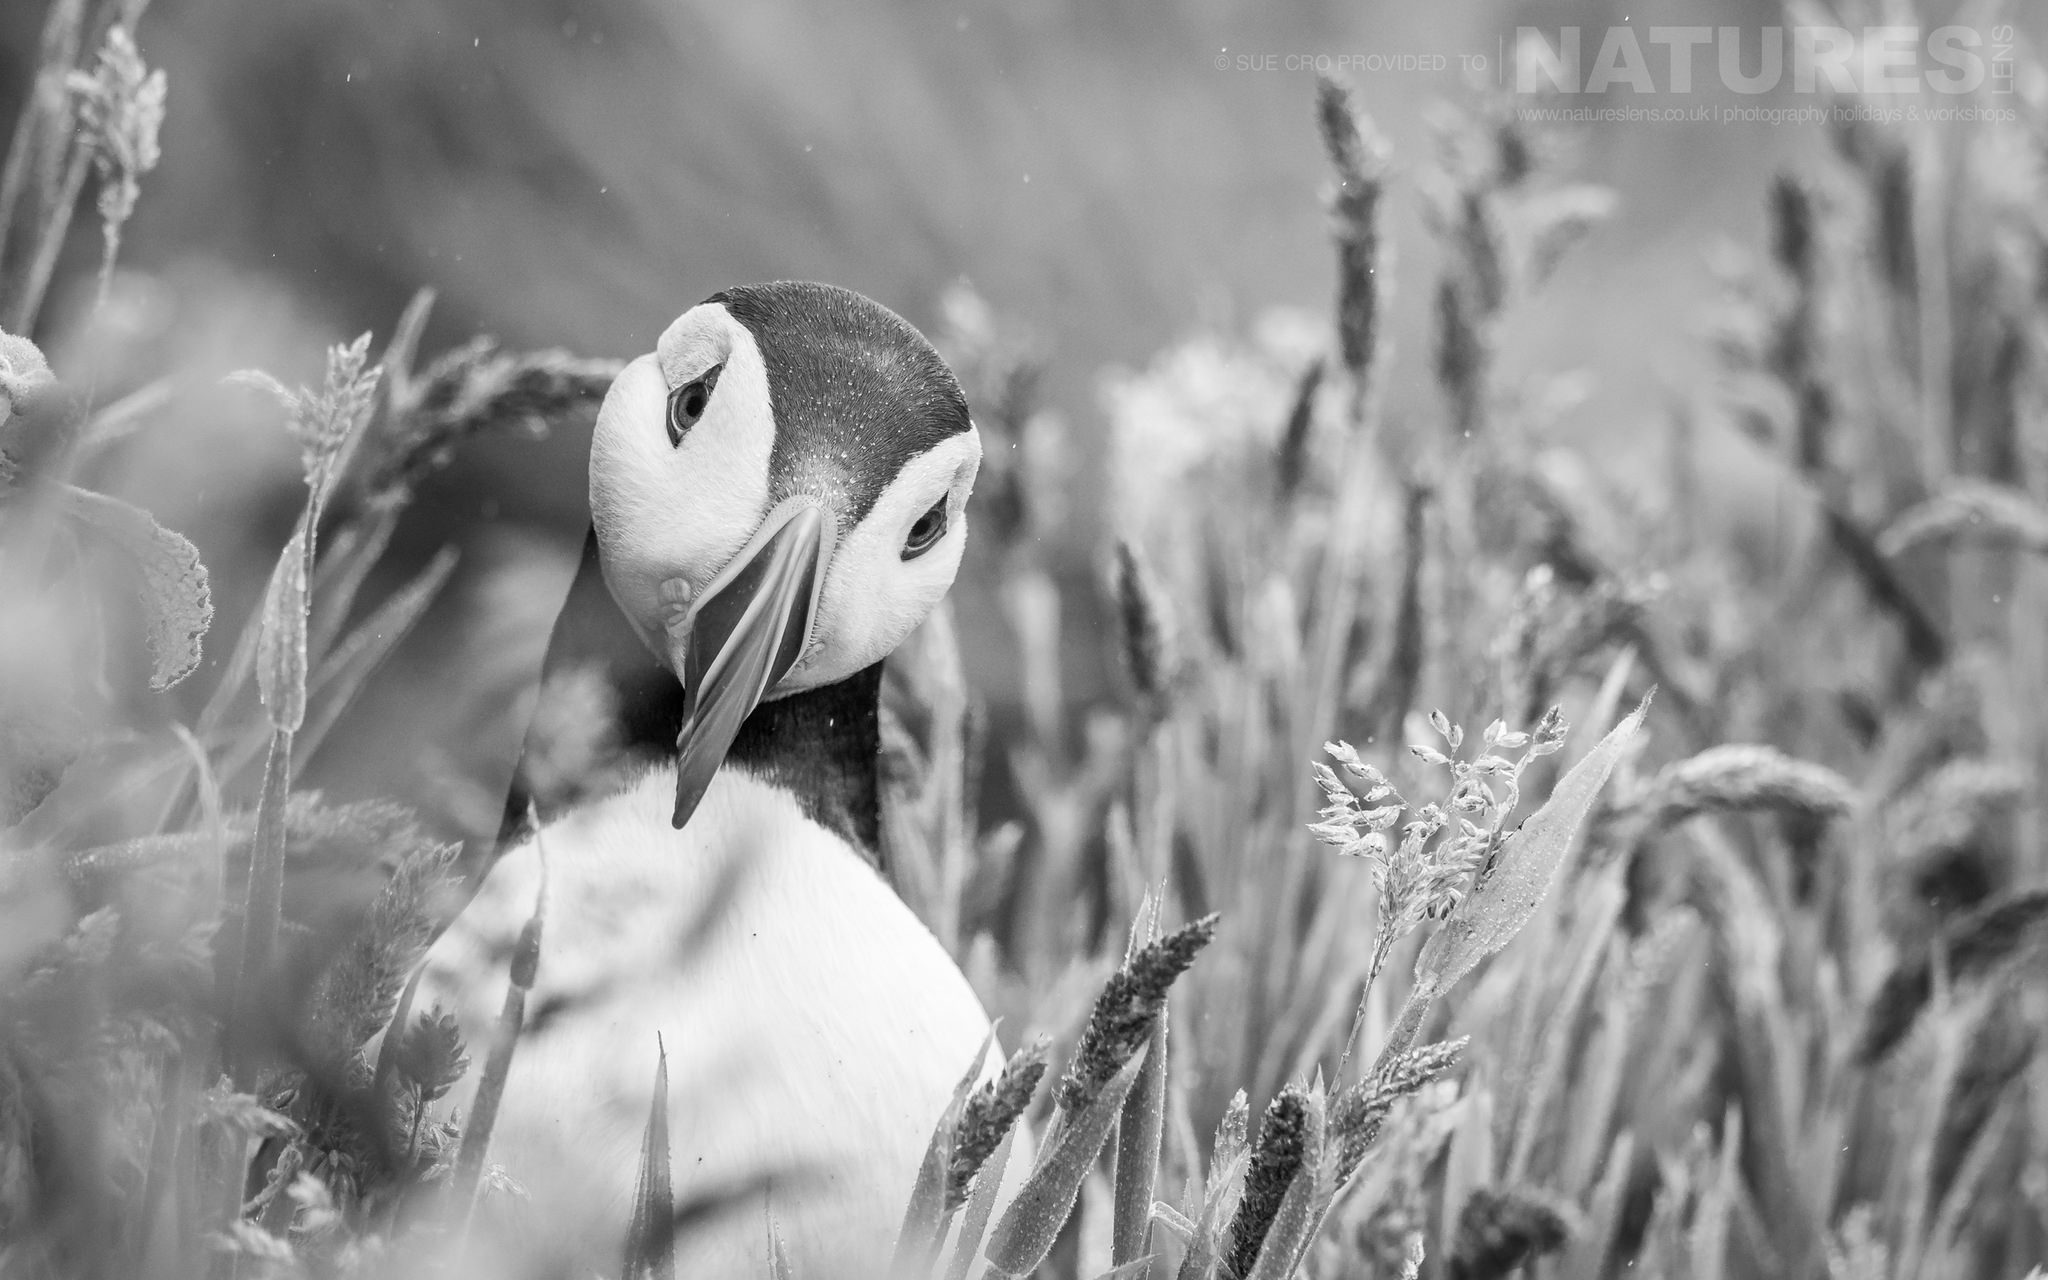 A Peeking Puffin Amongst The Long Grasses Of The Wick, This Puffin Poses For A Classic Skomer Image   Photographed During The NaturesLens Atlantic Puffins Of Skomer Photography Holiday